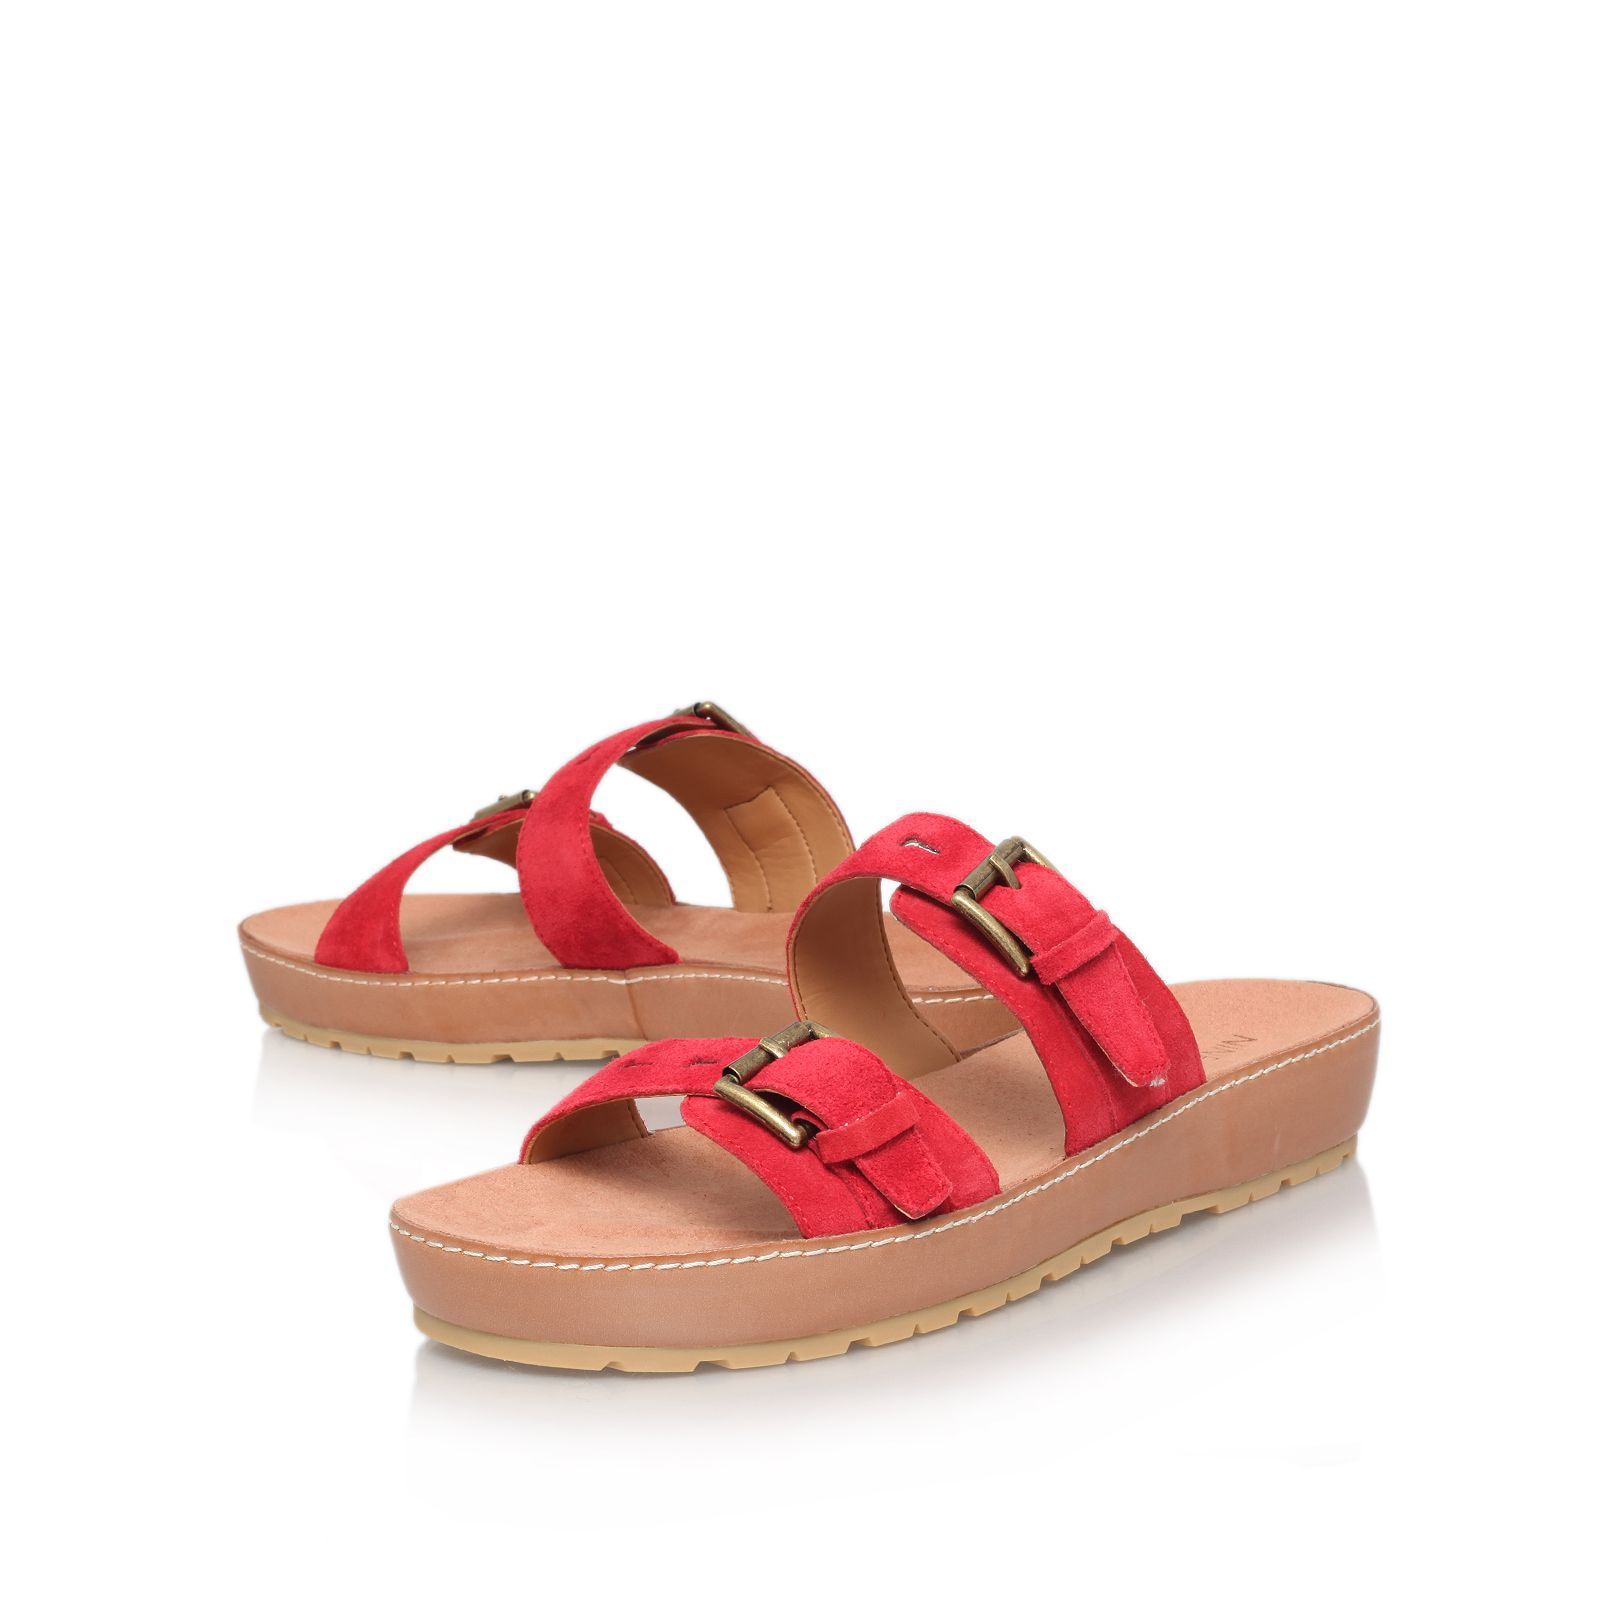 Ticktock flat sandals